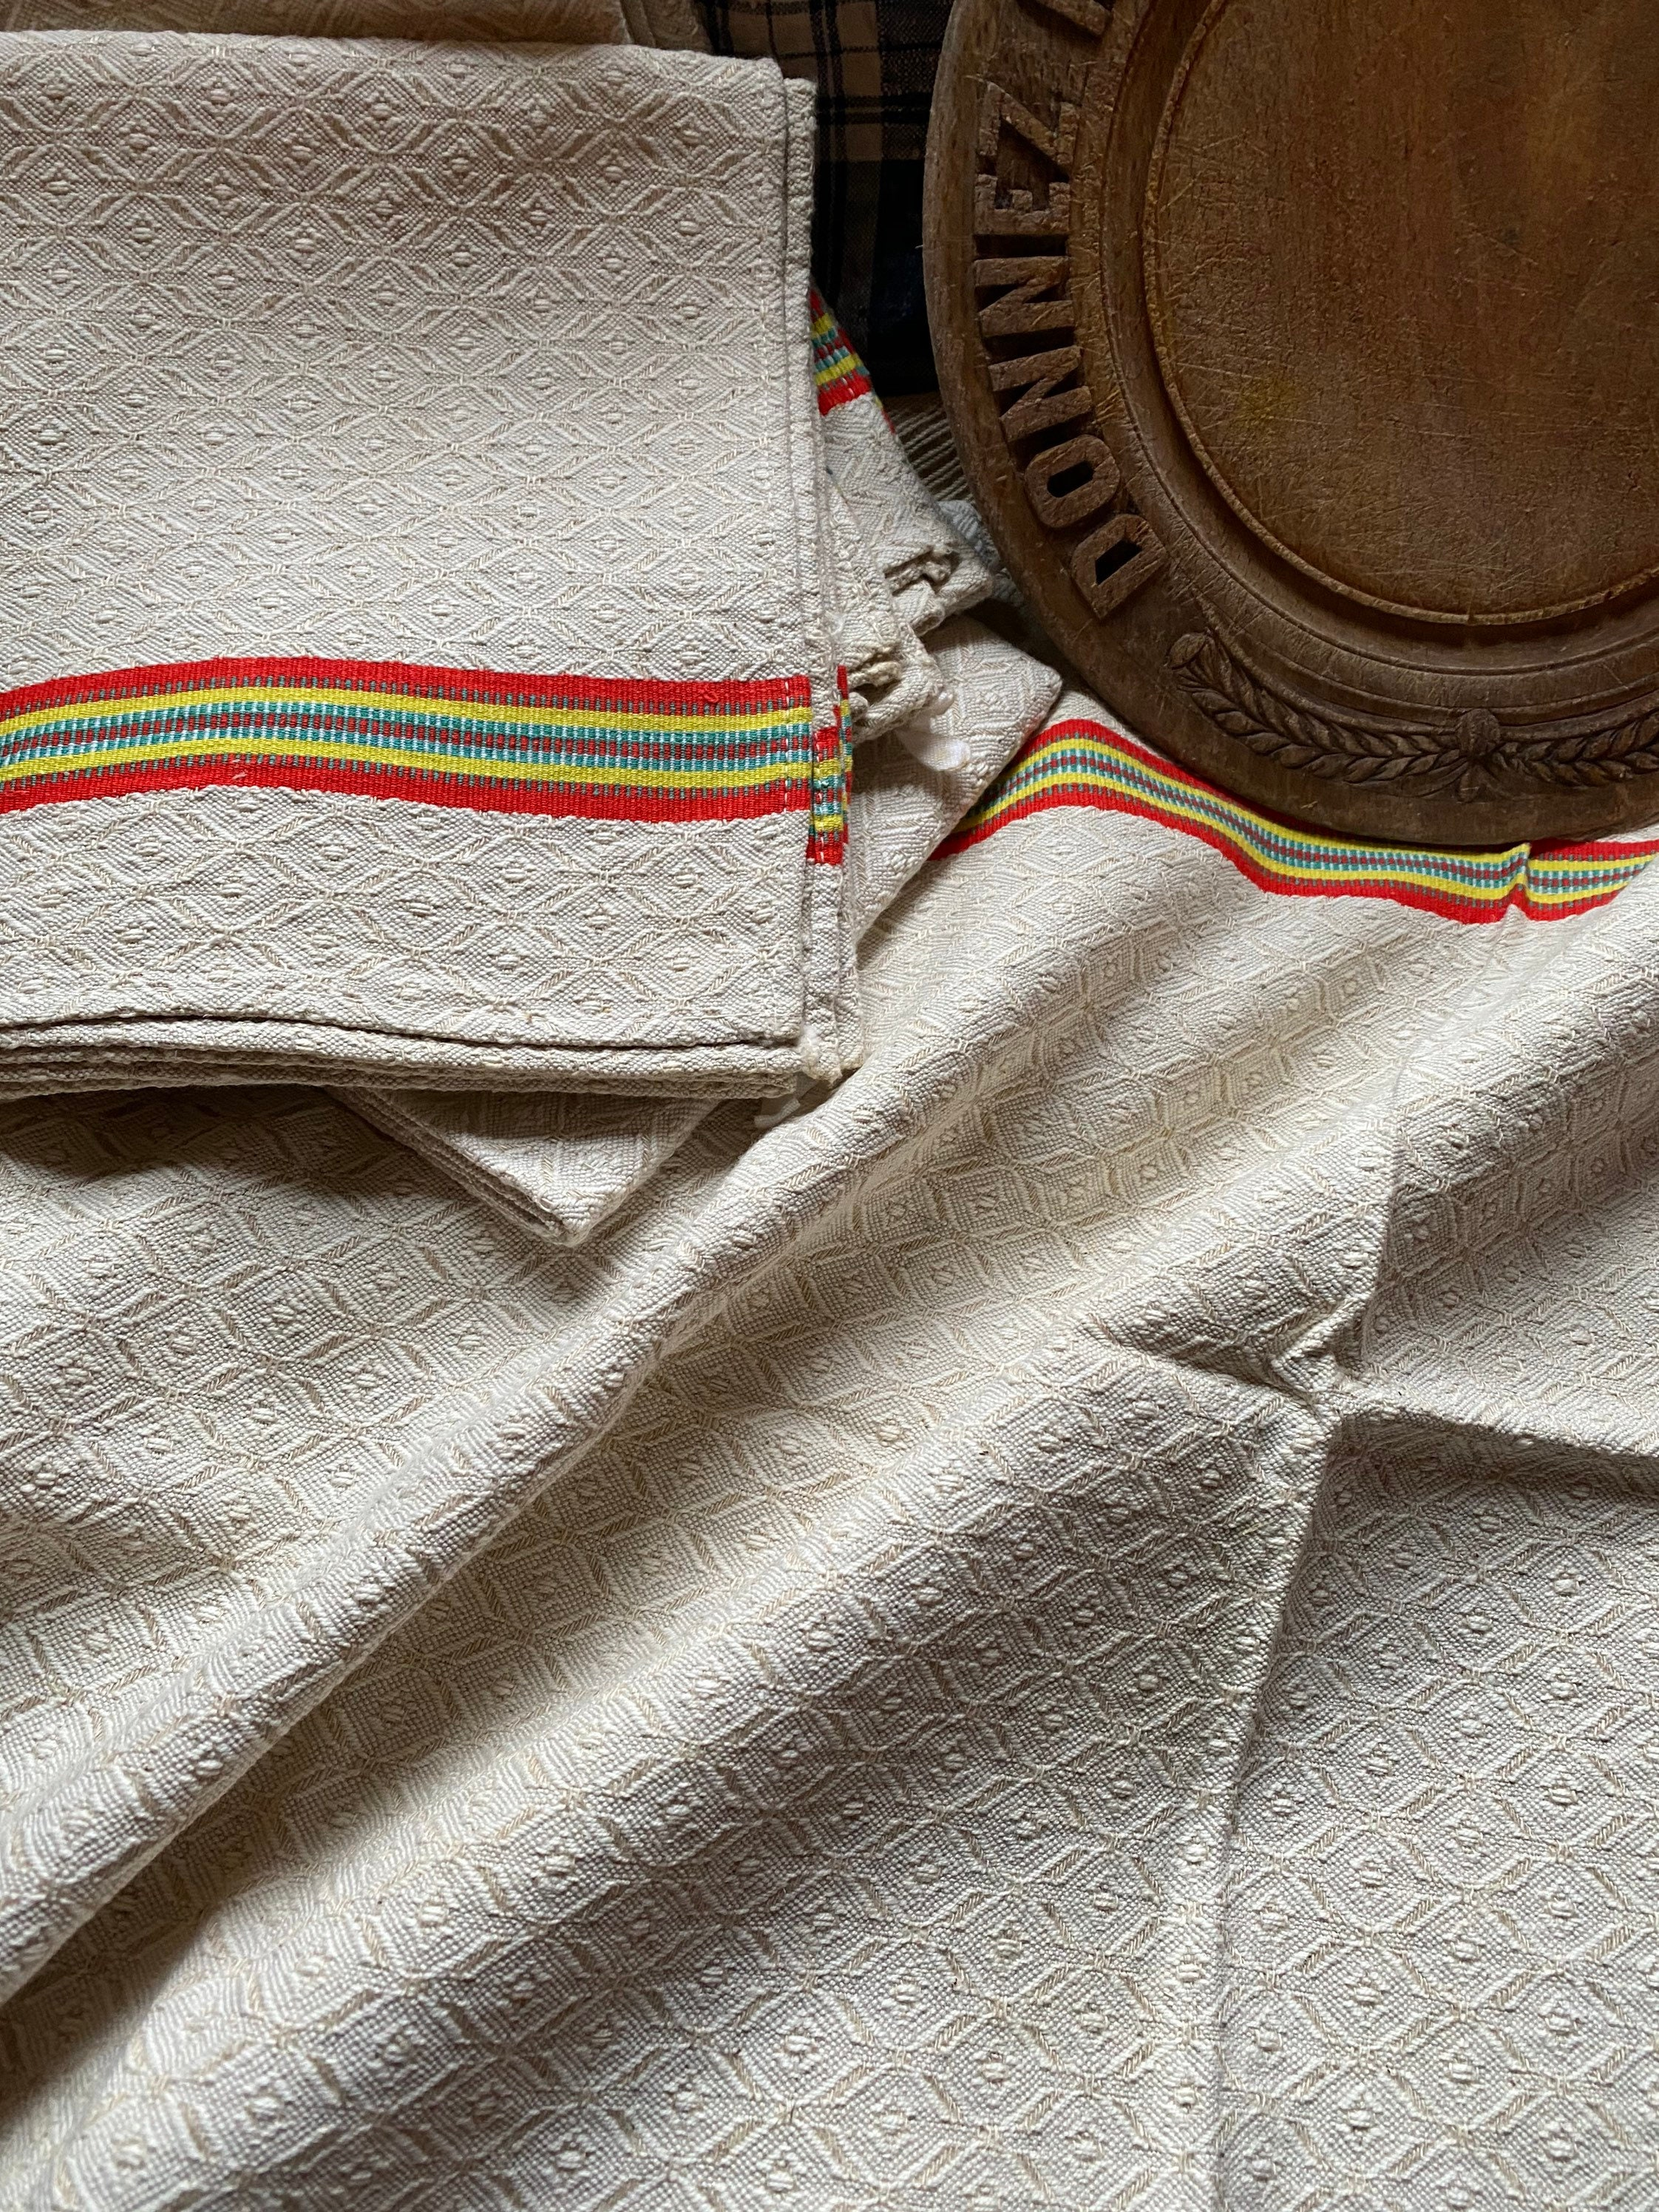 Antique French basque quality linen torchon hemp chanvre tea towel new old  stock shabby chic period stripe design